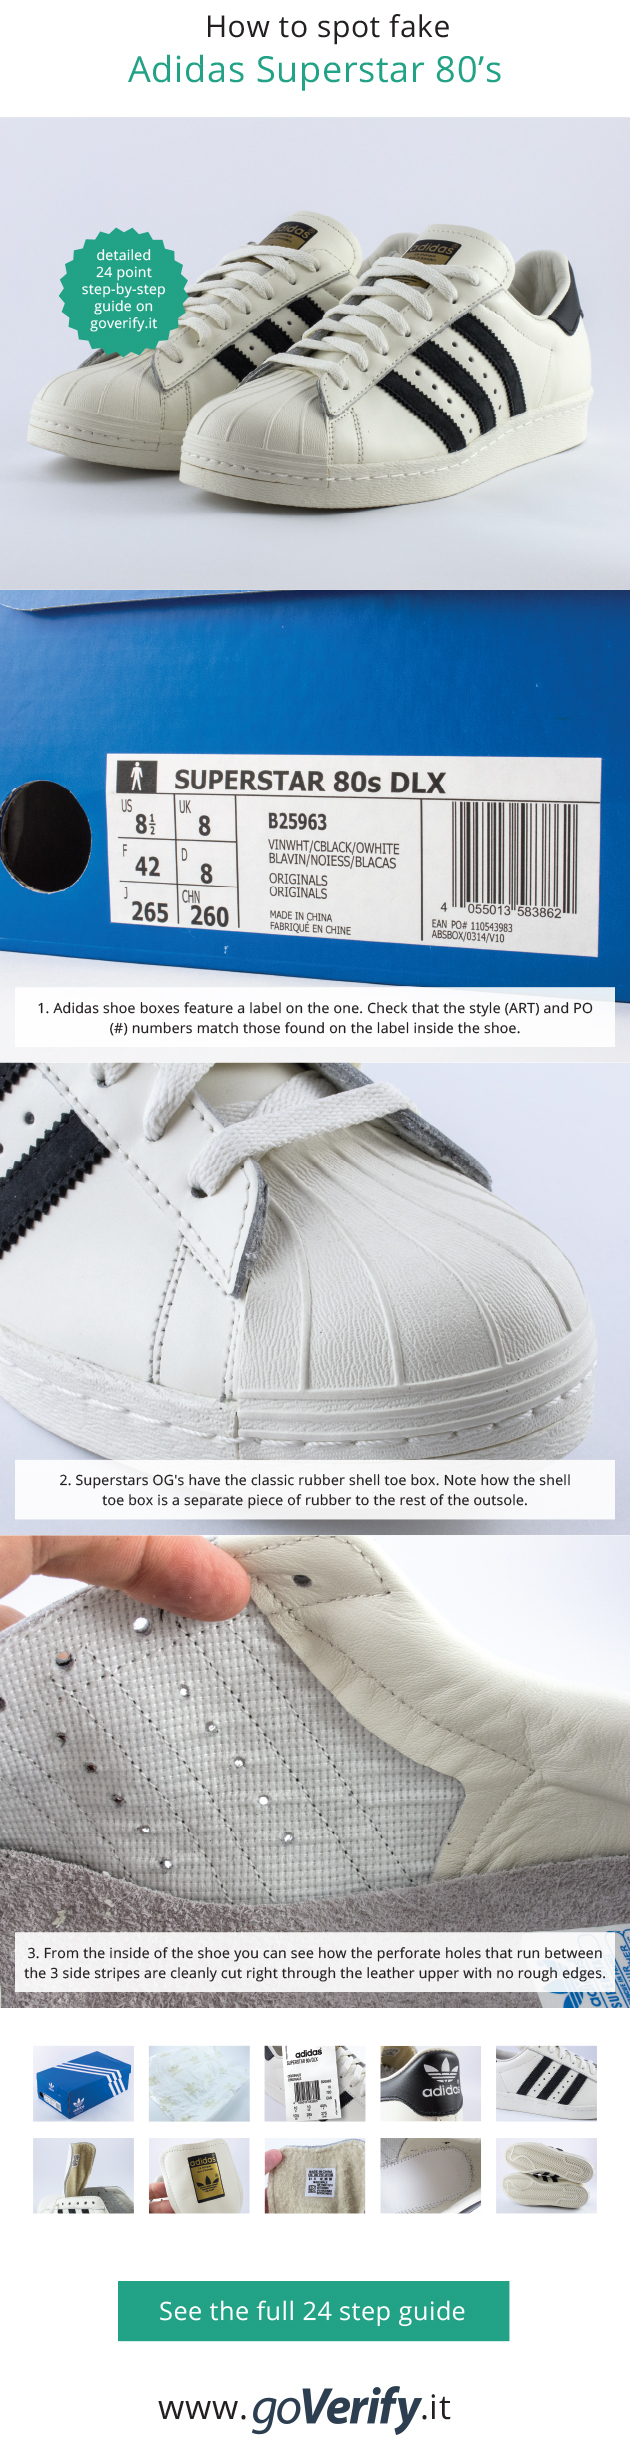 5524d7e1892 How to spot fake Adidas Superstar OG's, go to www.goverify.it for a ...